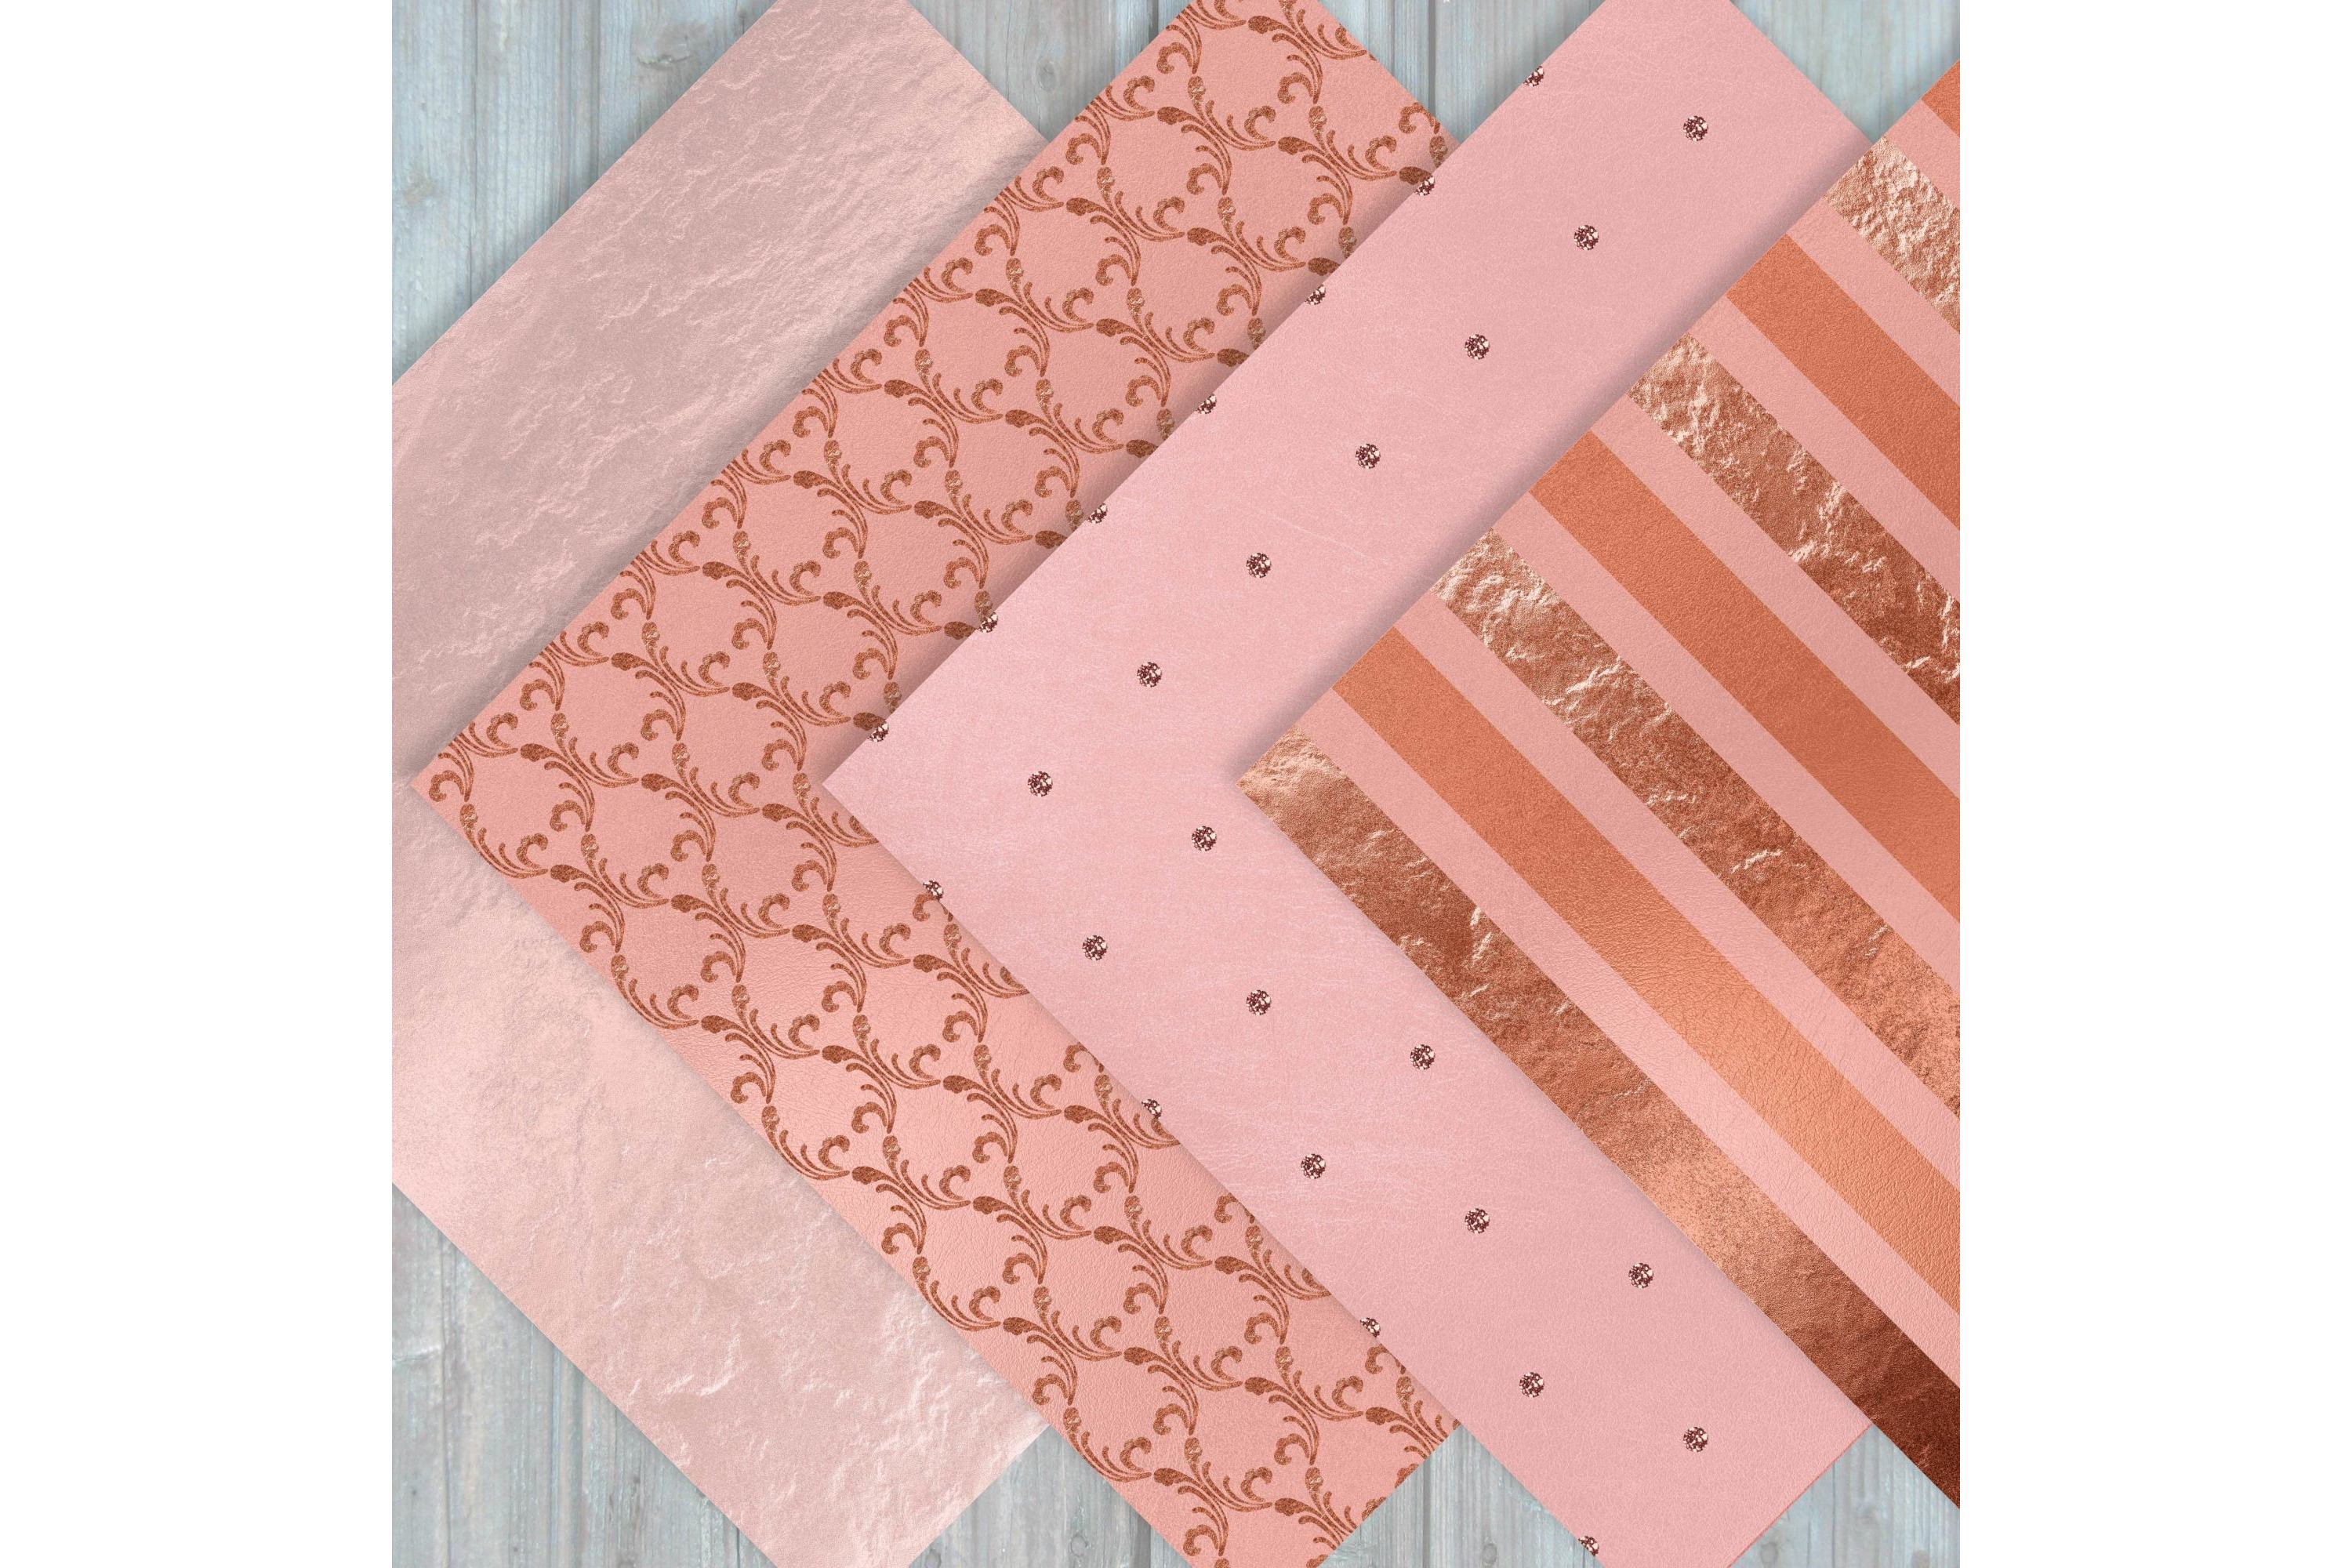 Rose Gold Digital Paper - Rose Gold Texture example image 4